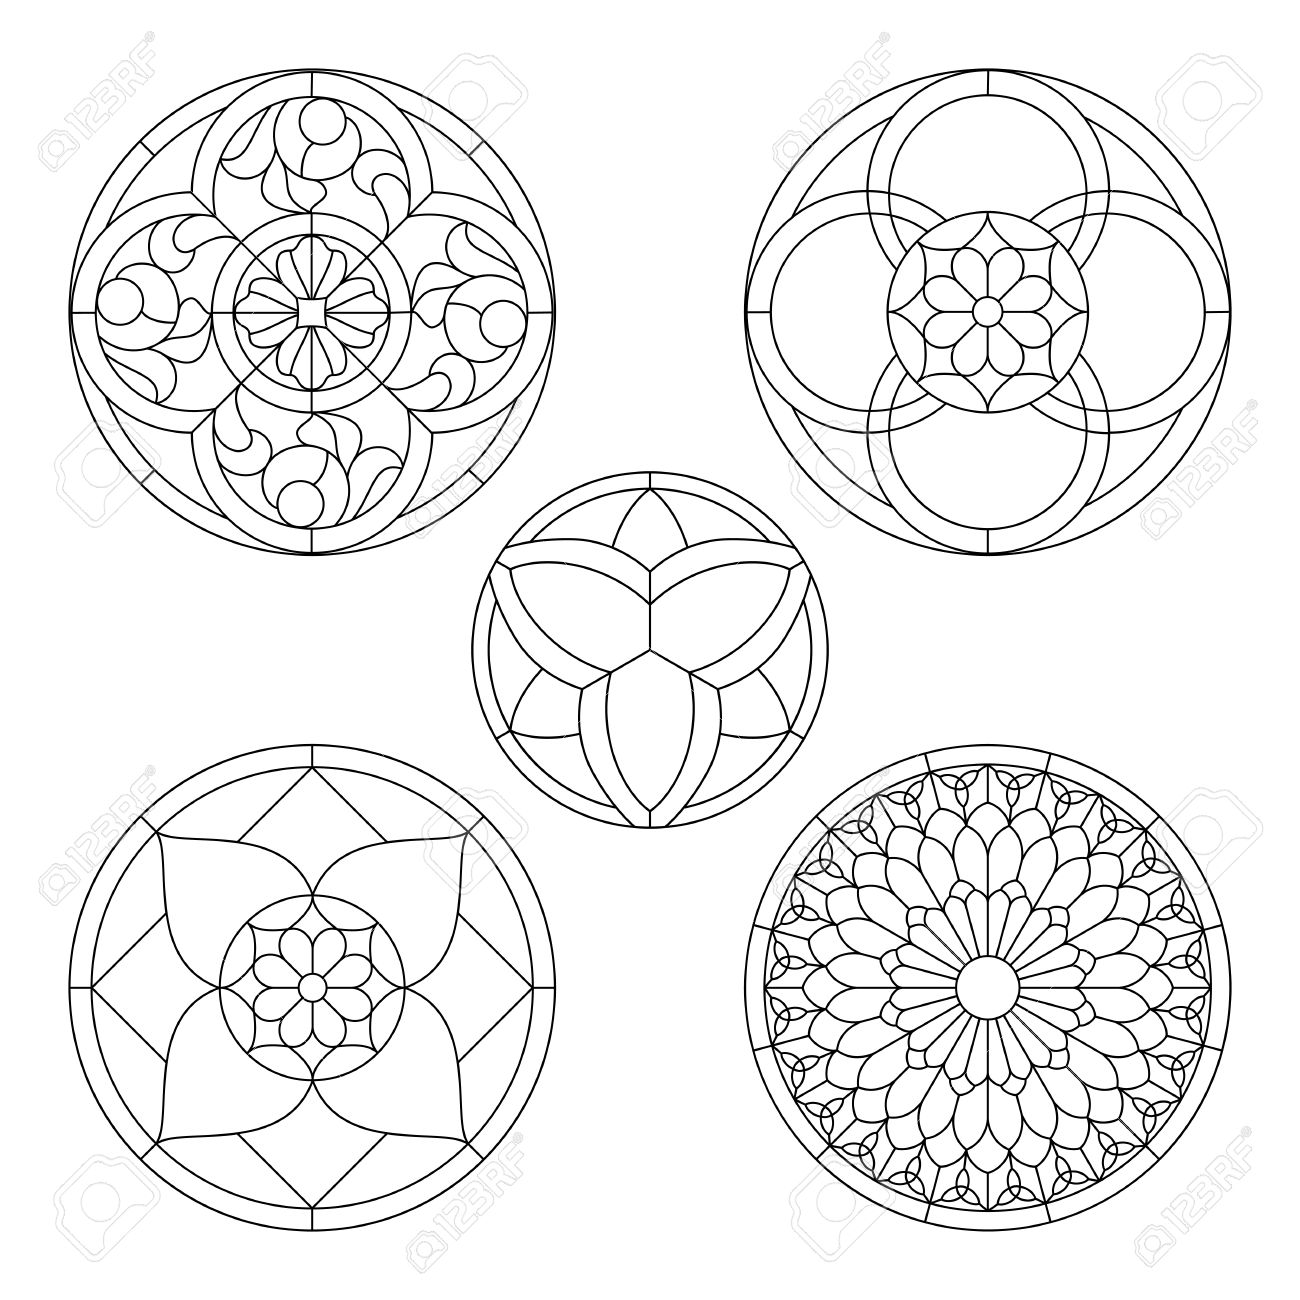 Stained glass templates round elements for stained glass windows stained glass templates round elements for stained glass windows stock vector 49172262 maxwellsz